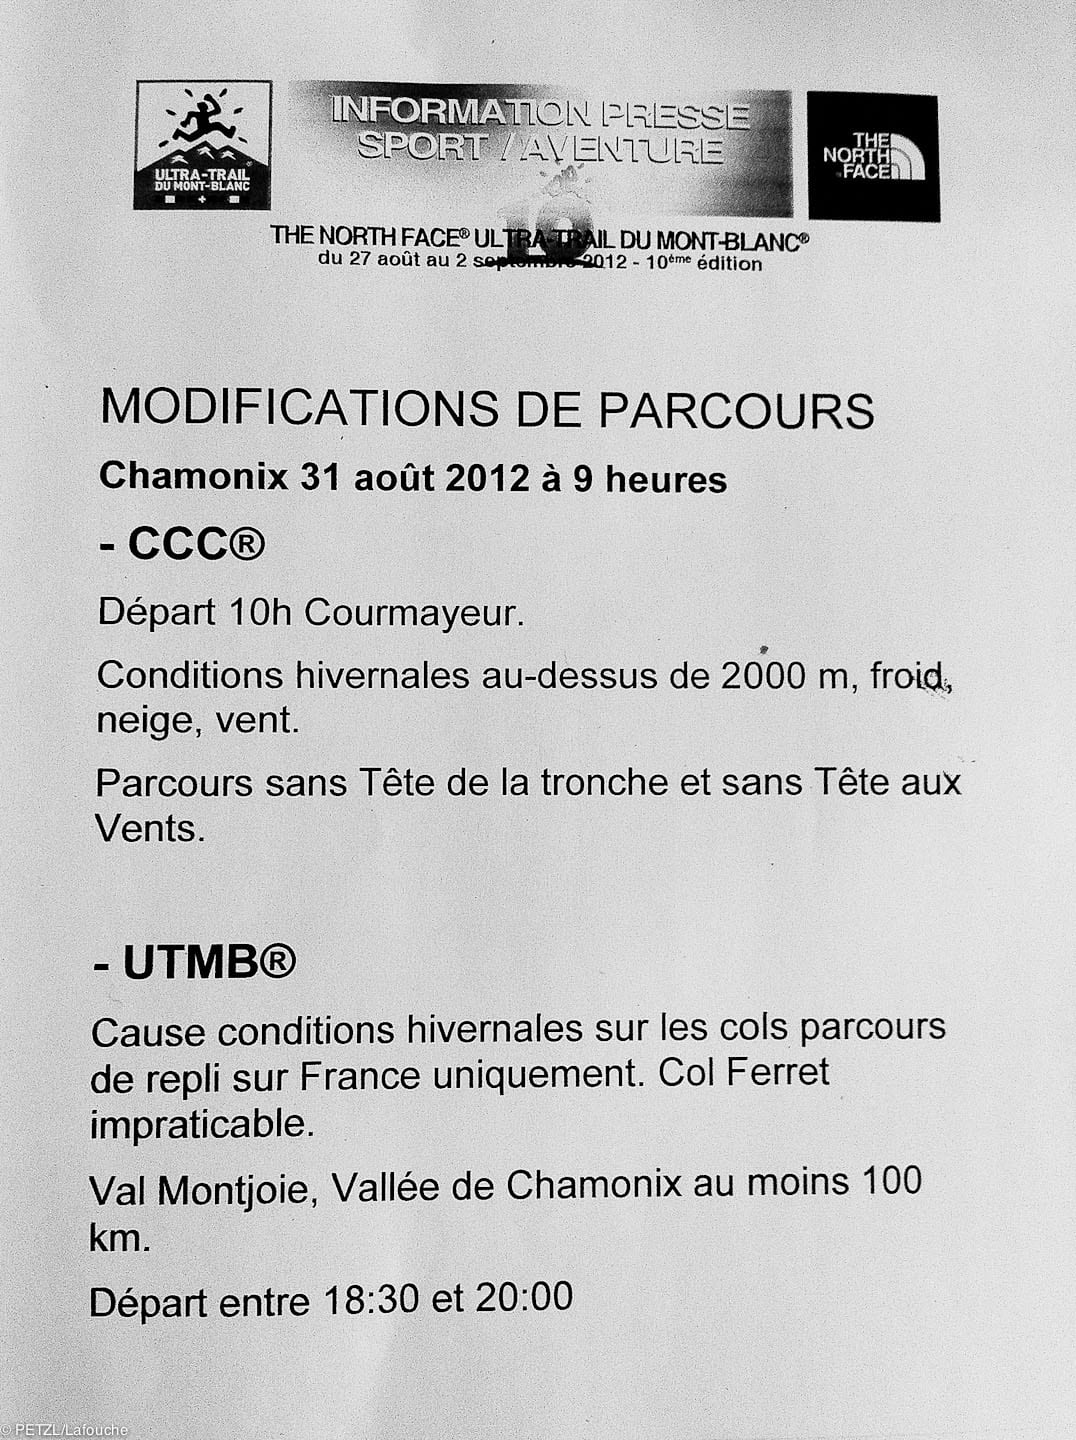 2012 TNF UTMB course change and delay